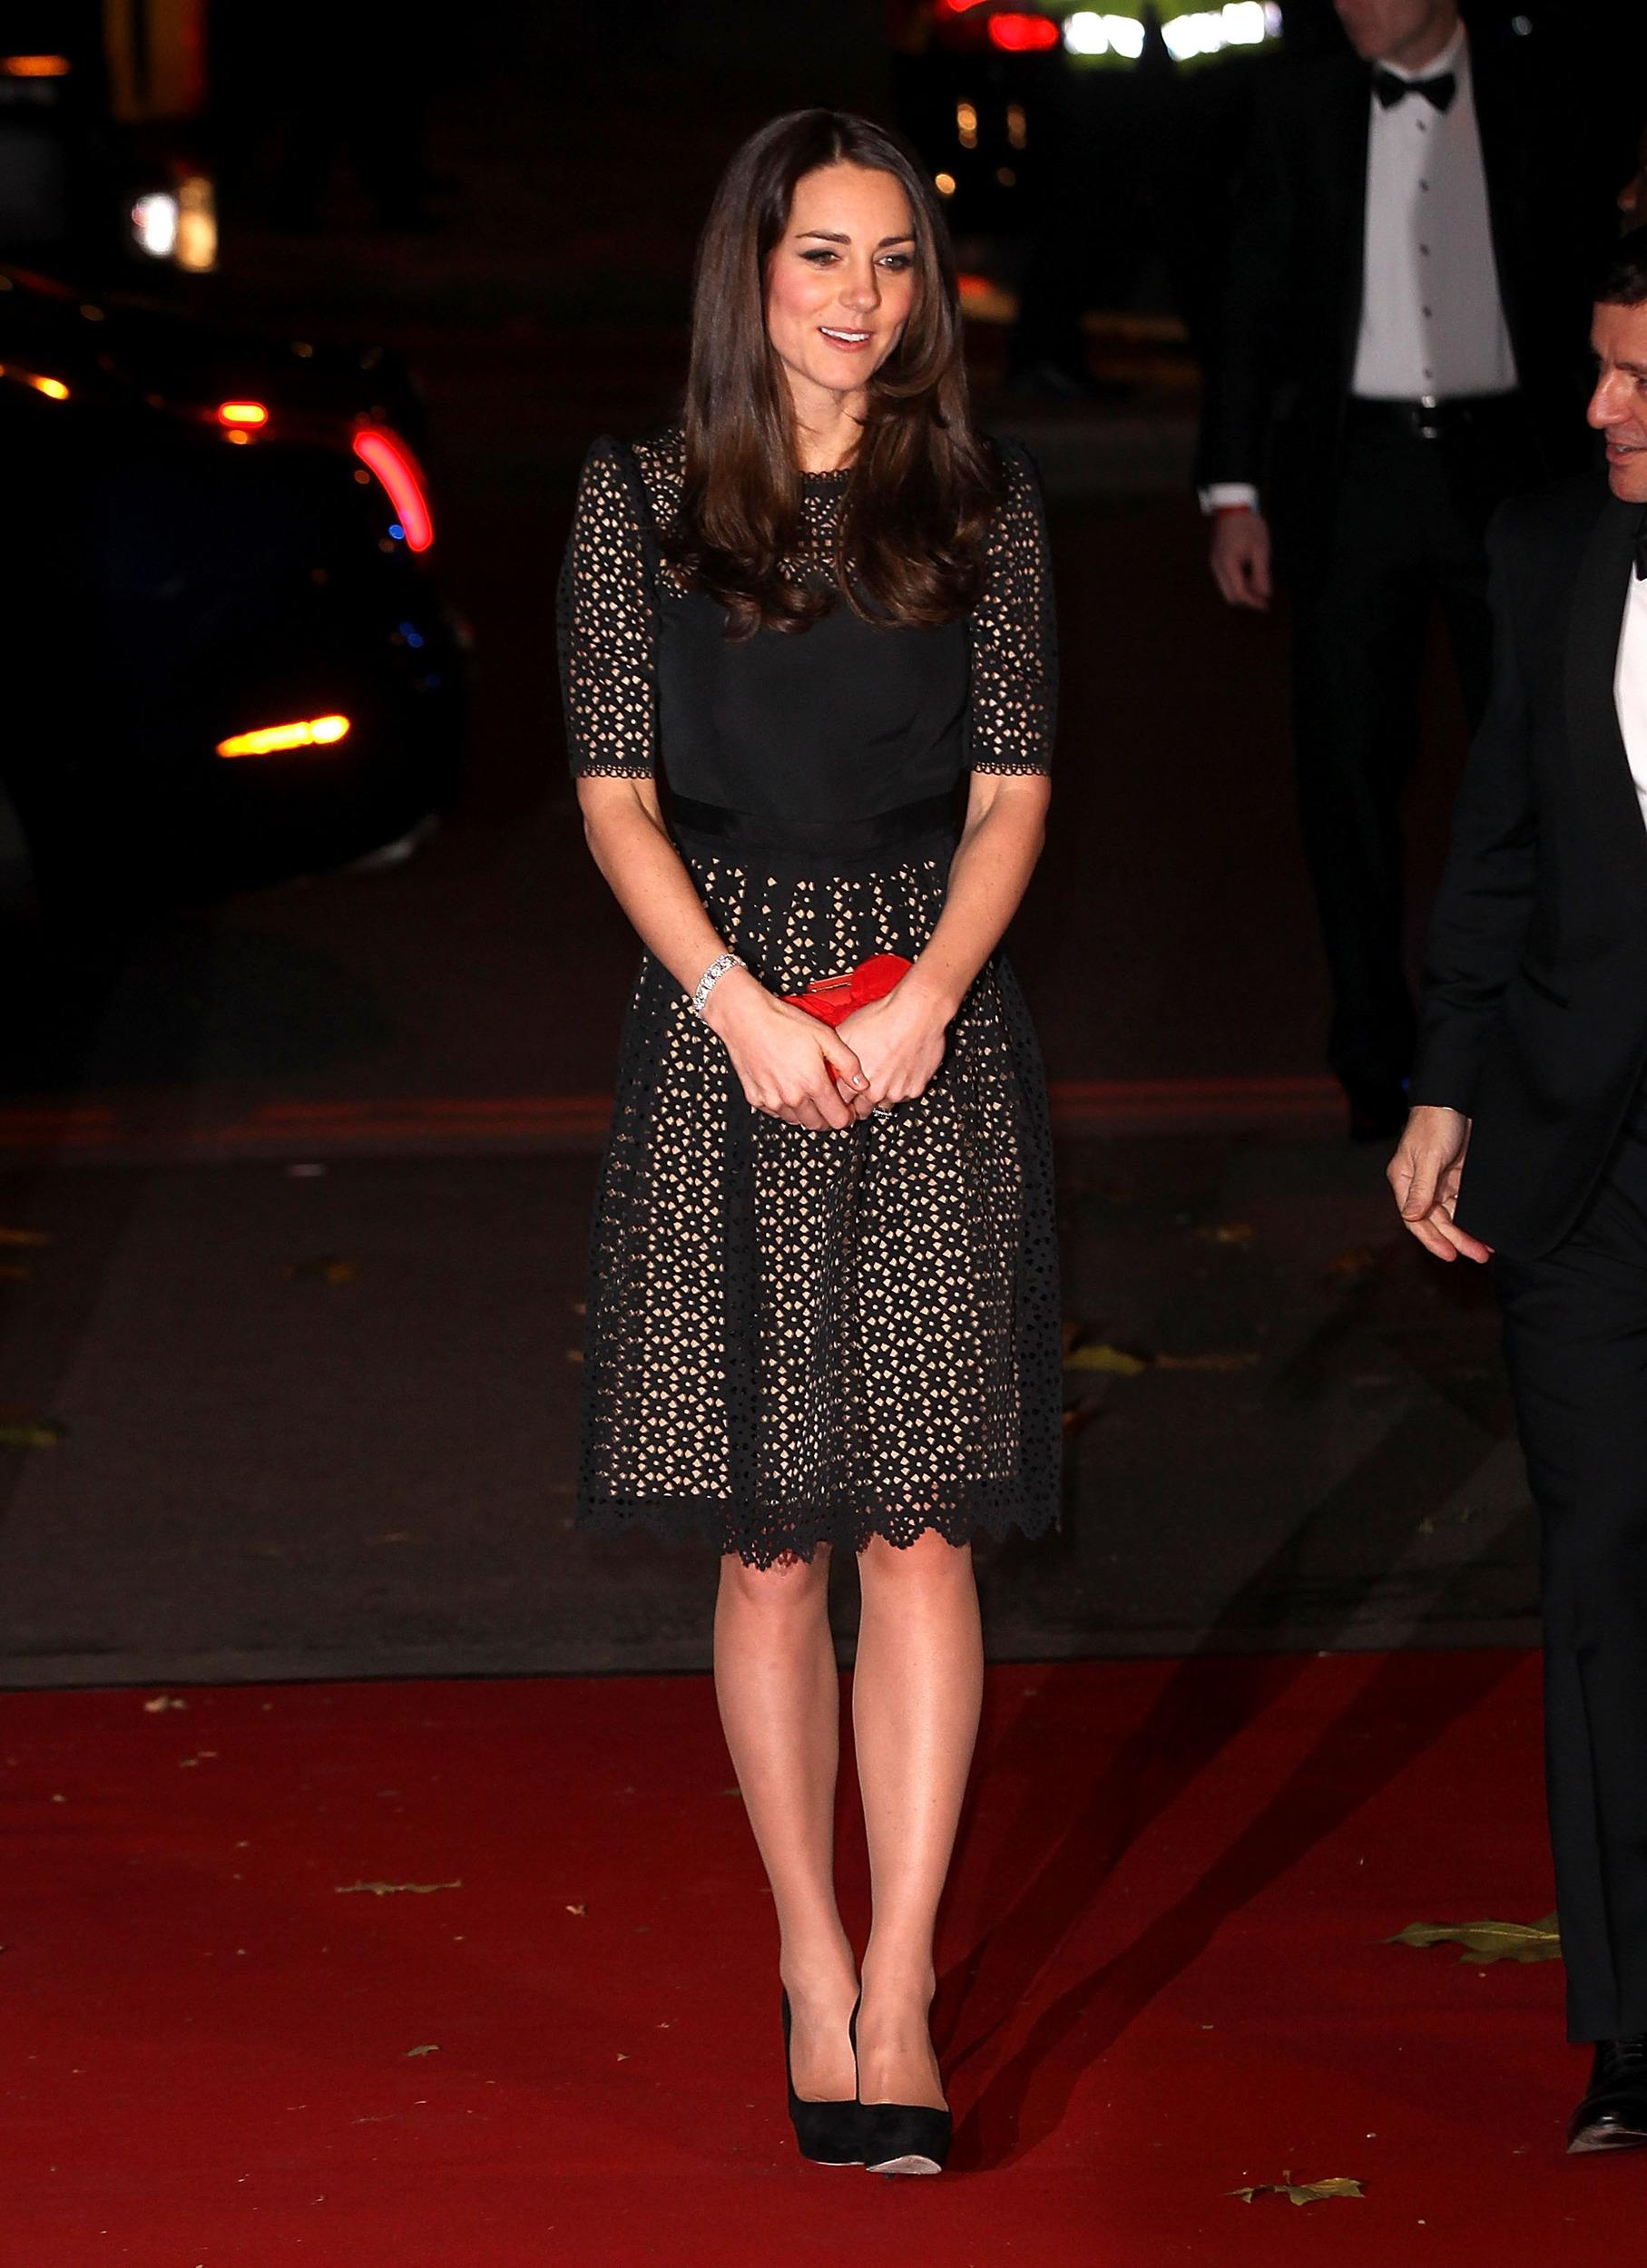 Kate attended the SportsBall, donning a laser-cut, black lace Temperley London cocktail dress, paired with her Jimmy Choo heels and Alexander McQueen clutch.